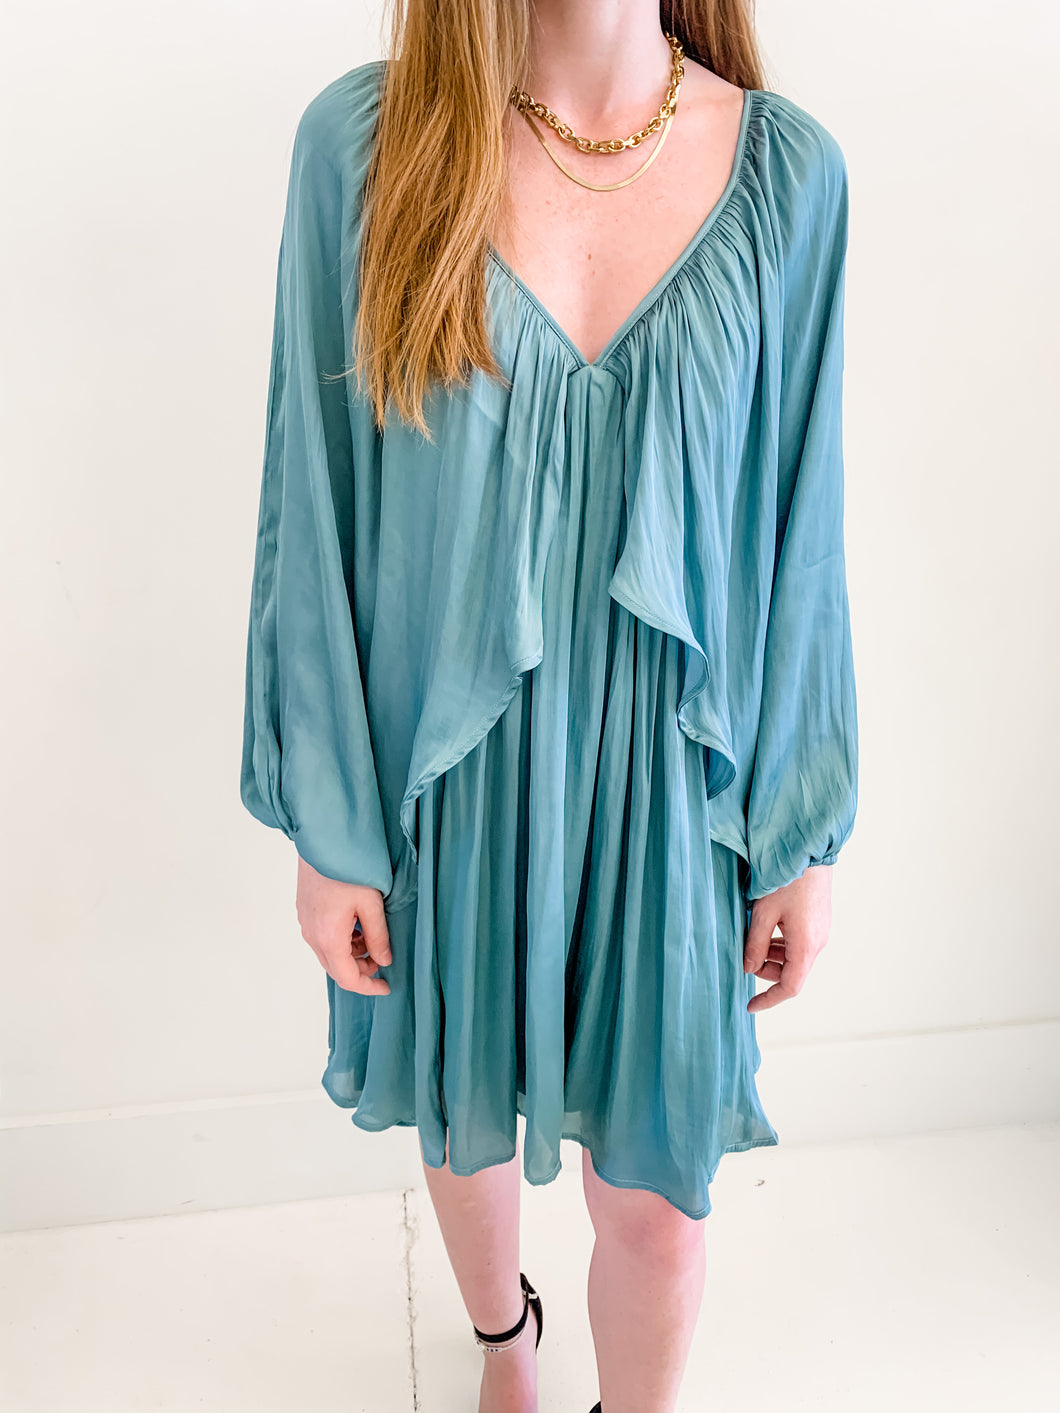 The Julianna Dress